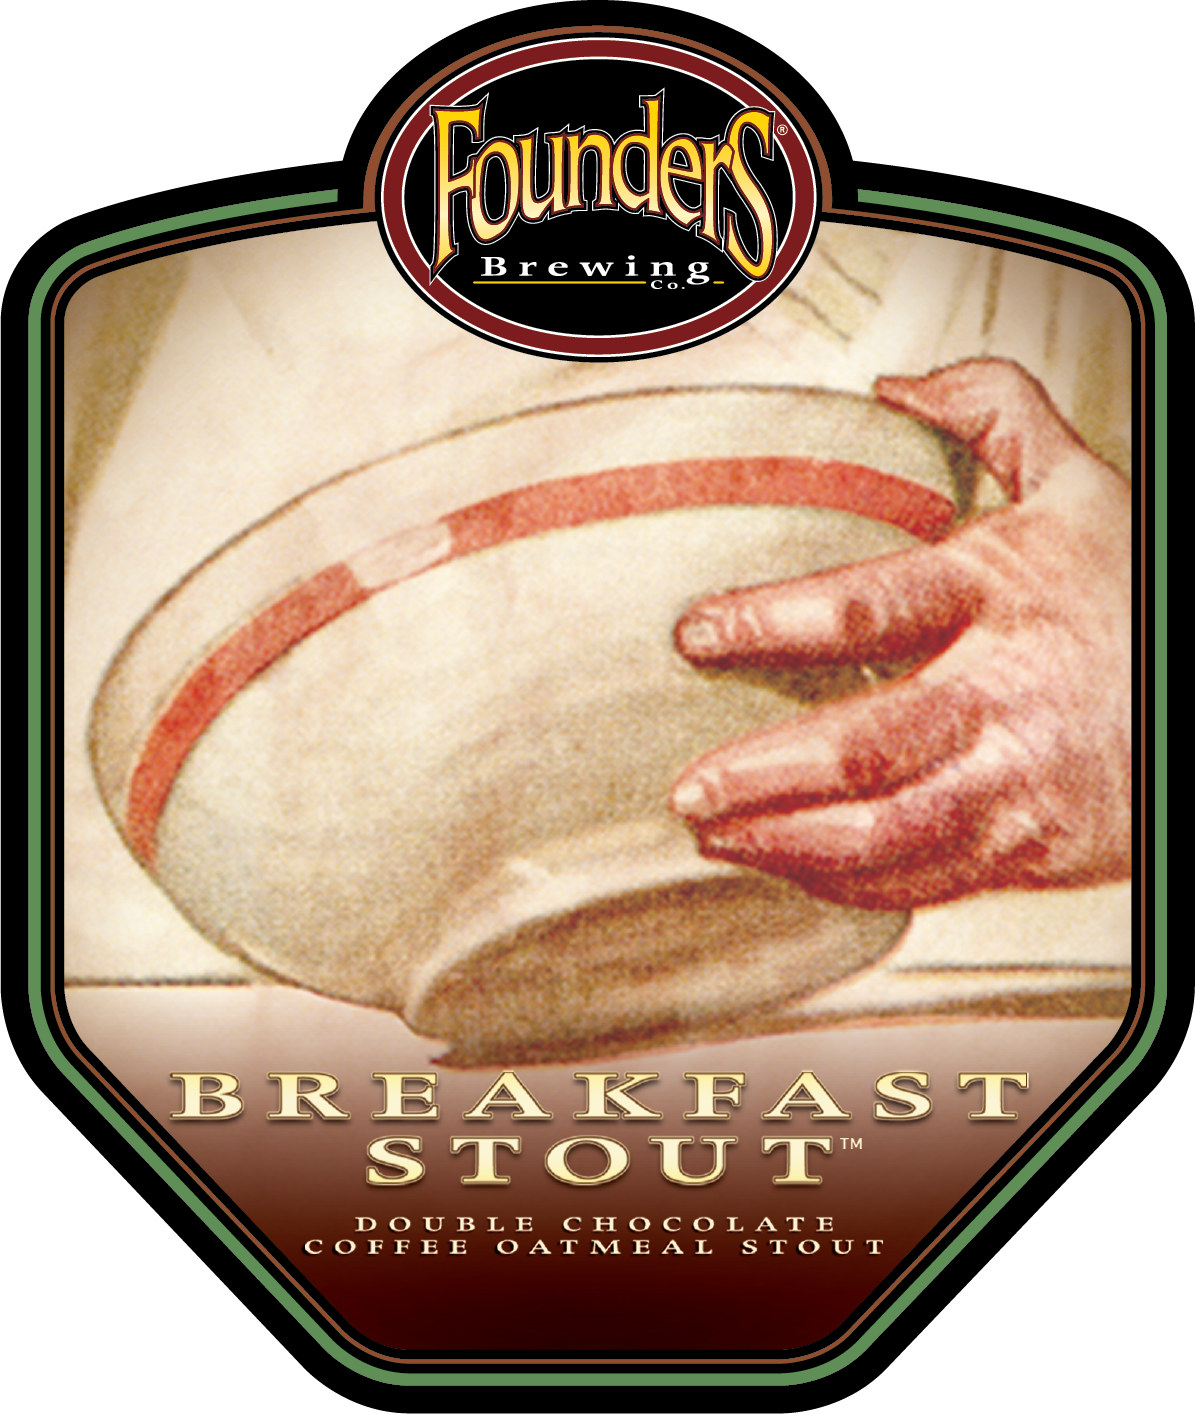 Founders Breakfast Stout logo